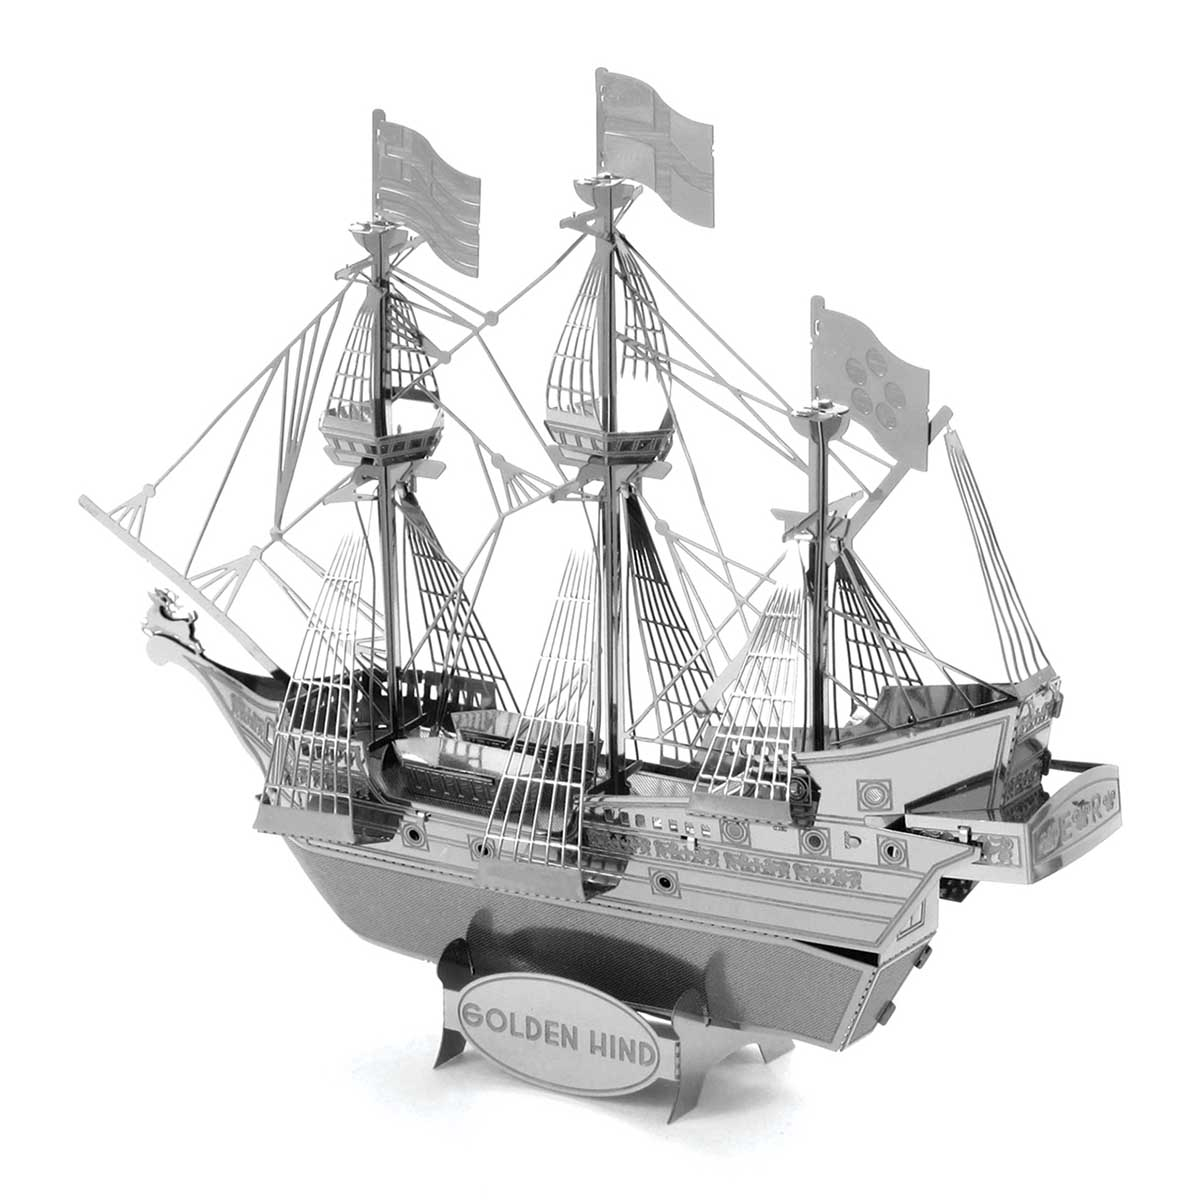 Golden Hind ship Boats 3D Puzzle